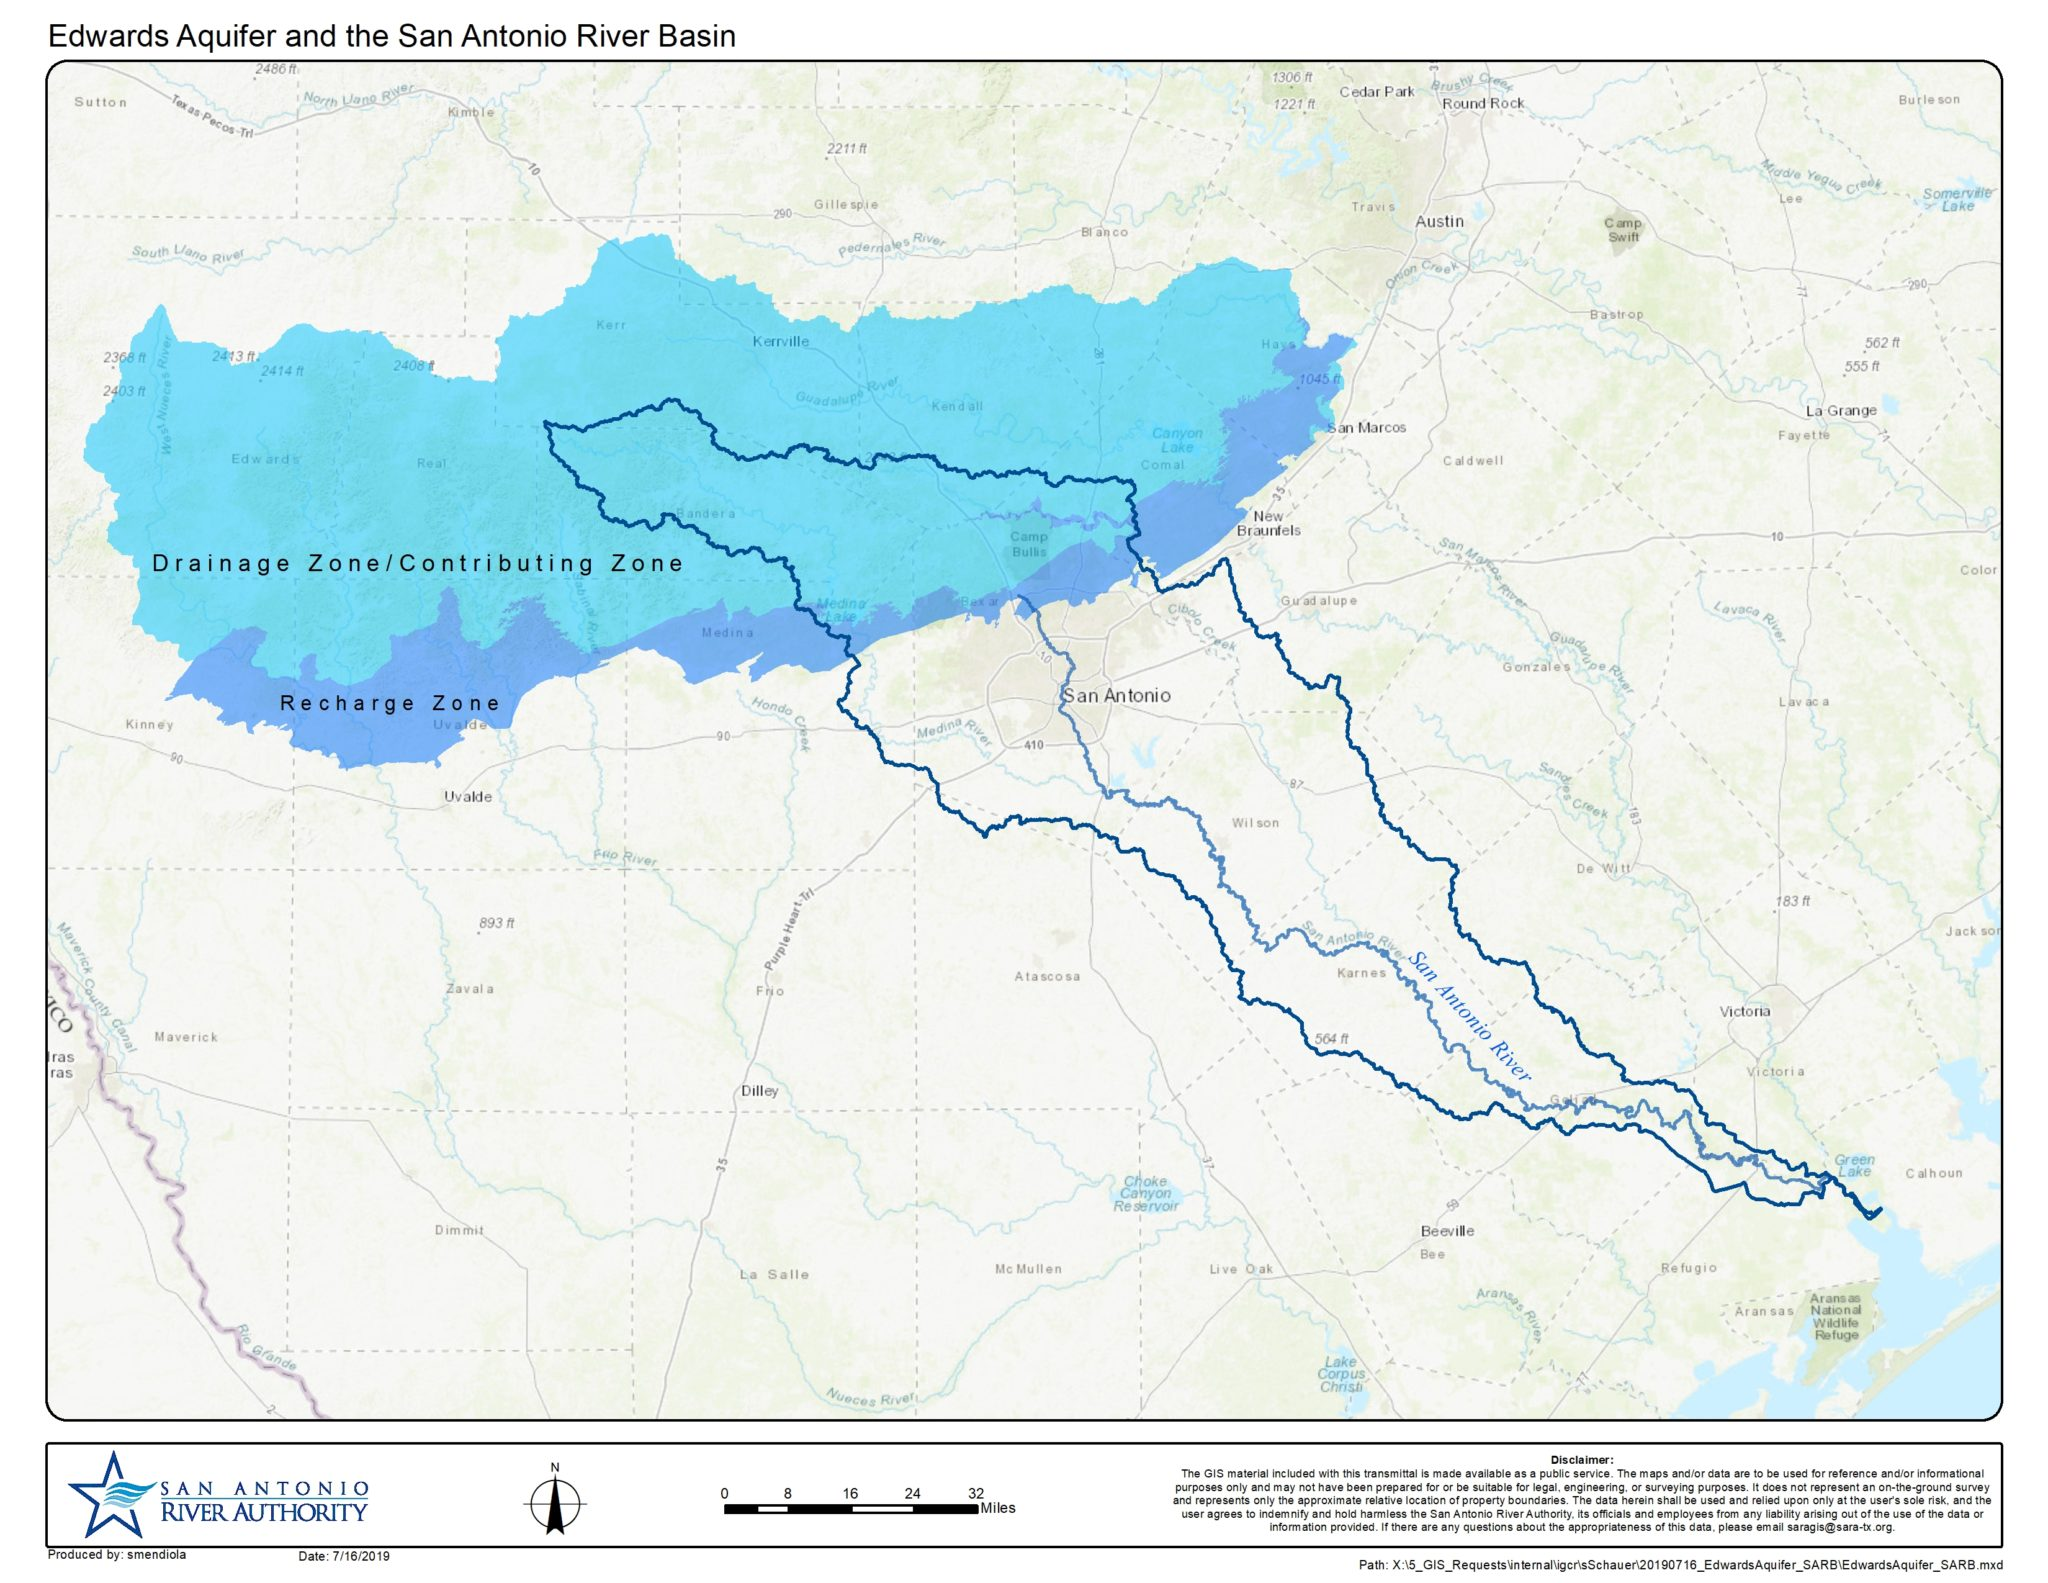 A map shows the boundaries of the watershed of the San Antonio River (blue line) layered over the Edwards Aquifer Recharge Zone (dark blue) and Contributing Zone (light blue).